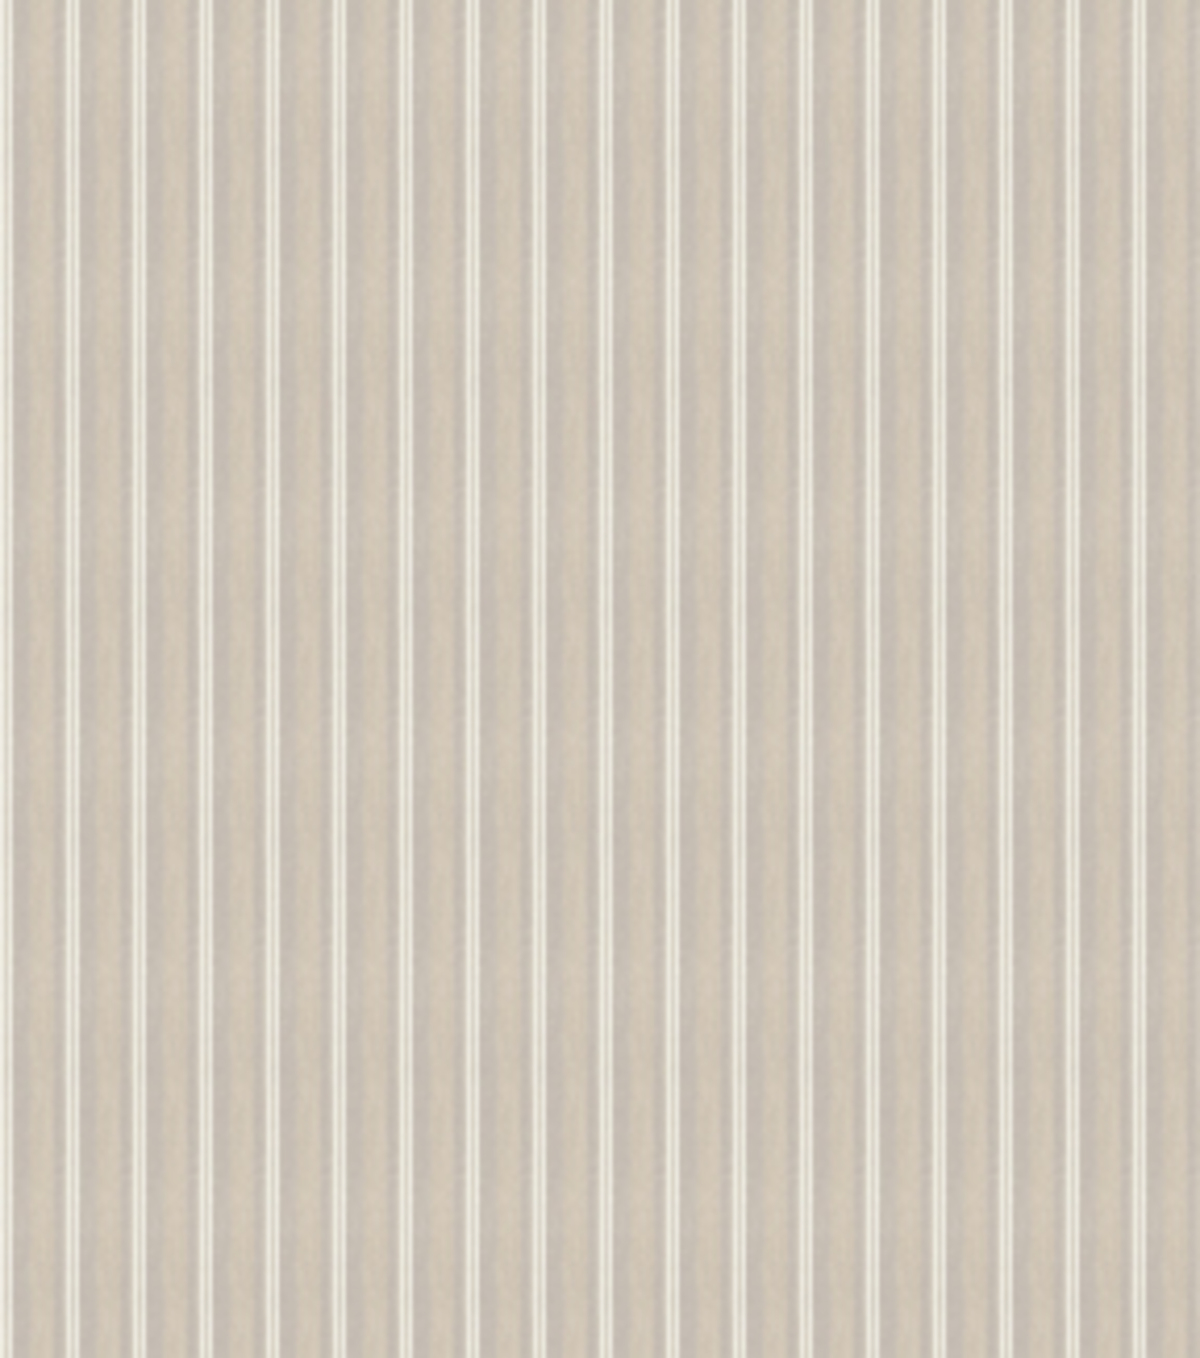 Home Decor 8\u0022x8\u0022 Fabric Swatch-Heritage House Store / Linen